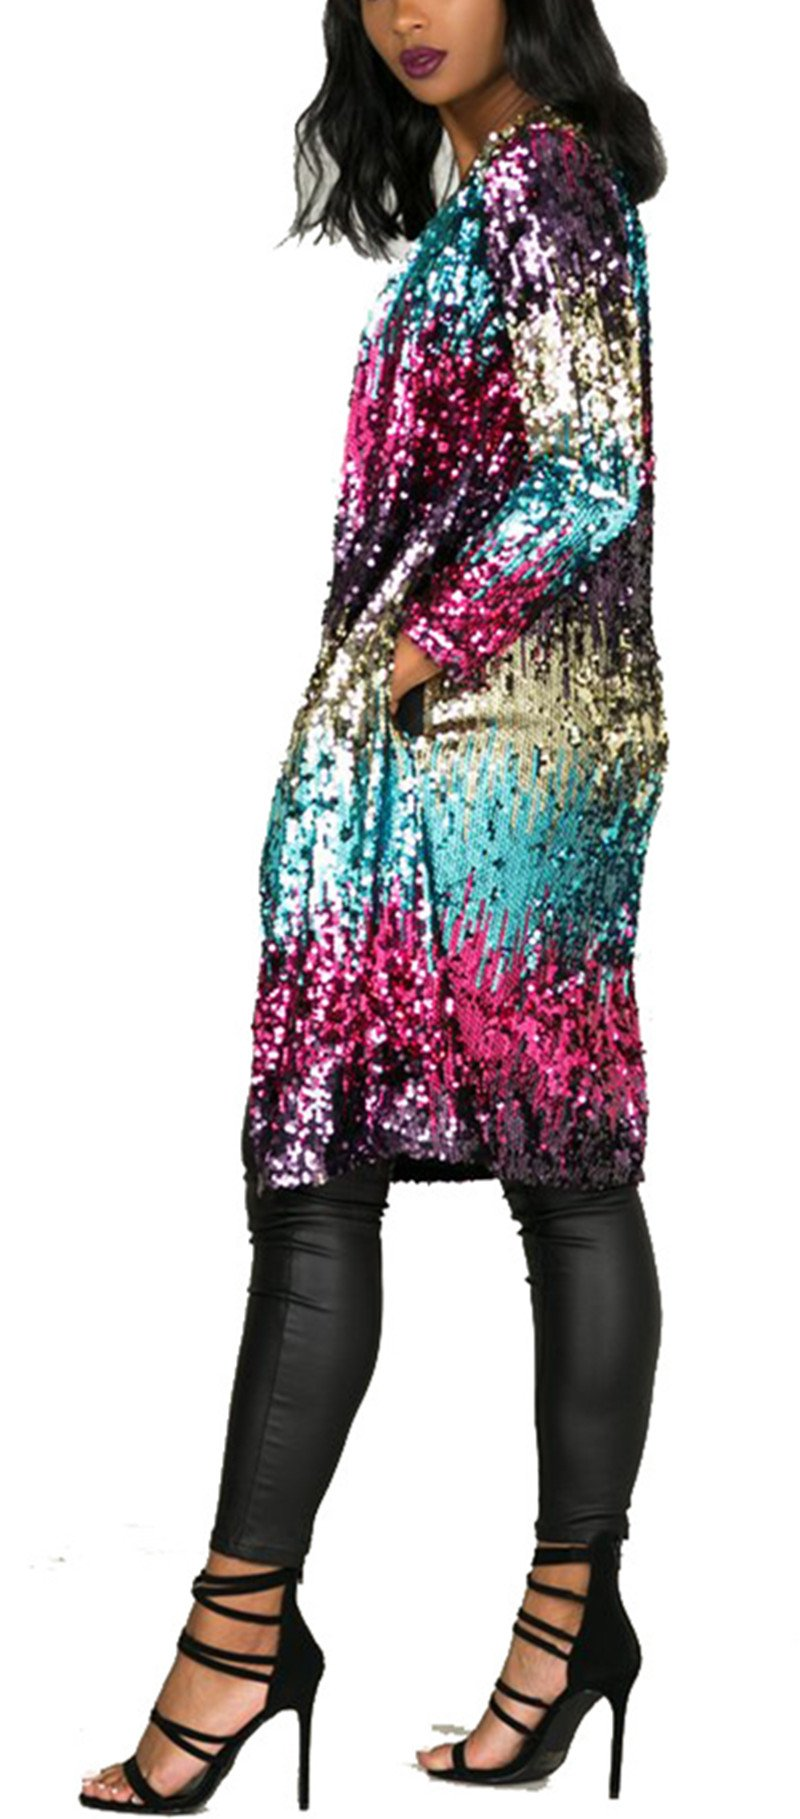 Women's Spring Fall Cover Up Long Sleeve Sparkling Sequins Long Loose Open Front Cardigan Coat Party Club Stage Dress S by Fashion Cluster (Image #4)